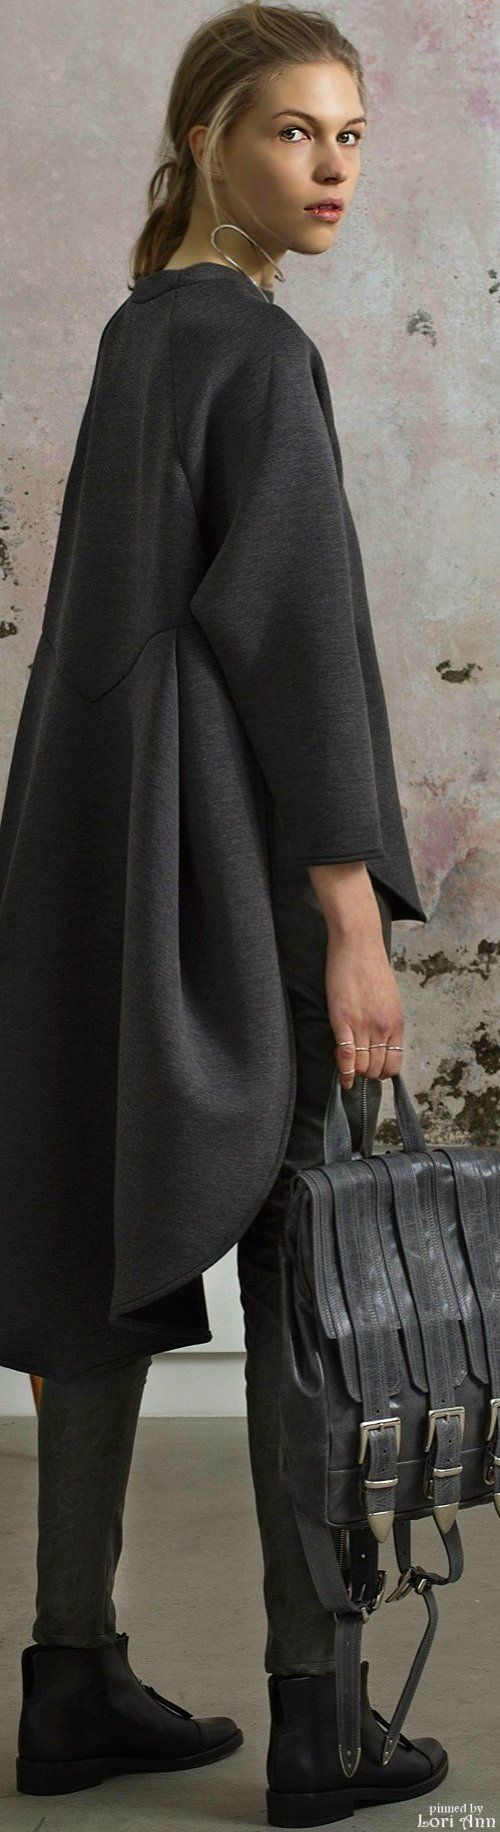 Beaufille Fall 2015 RTW